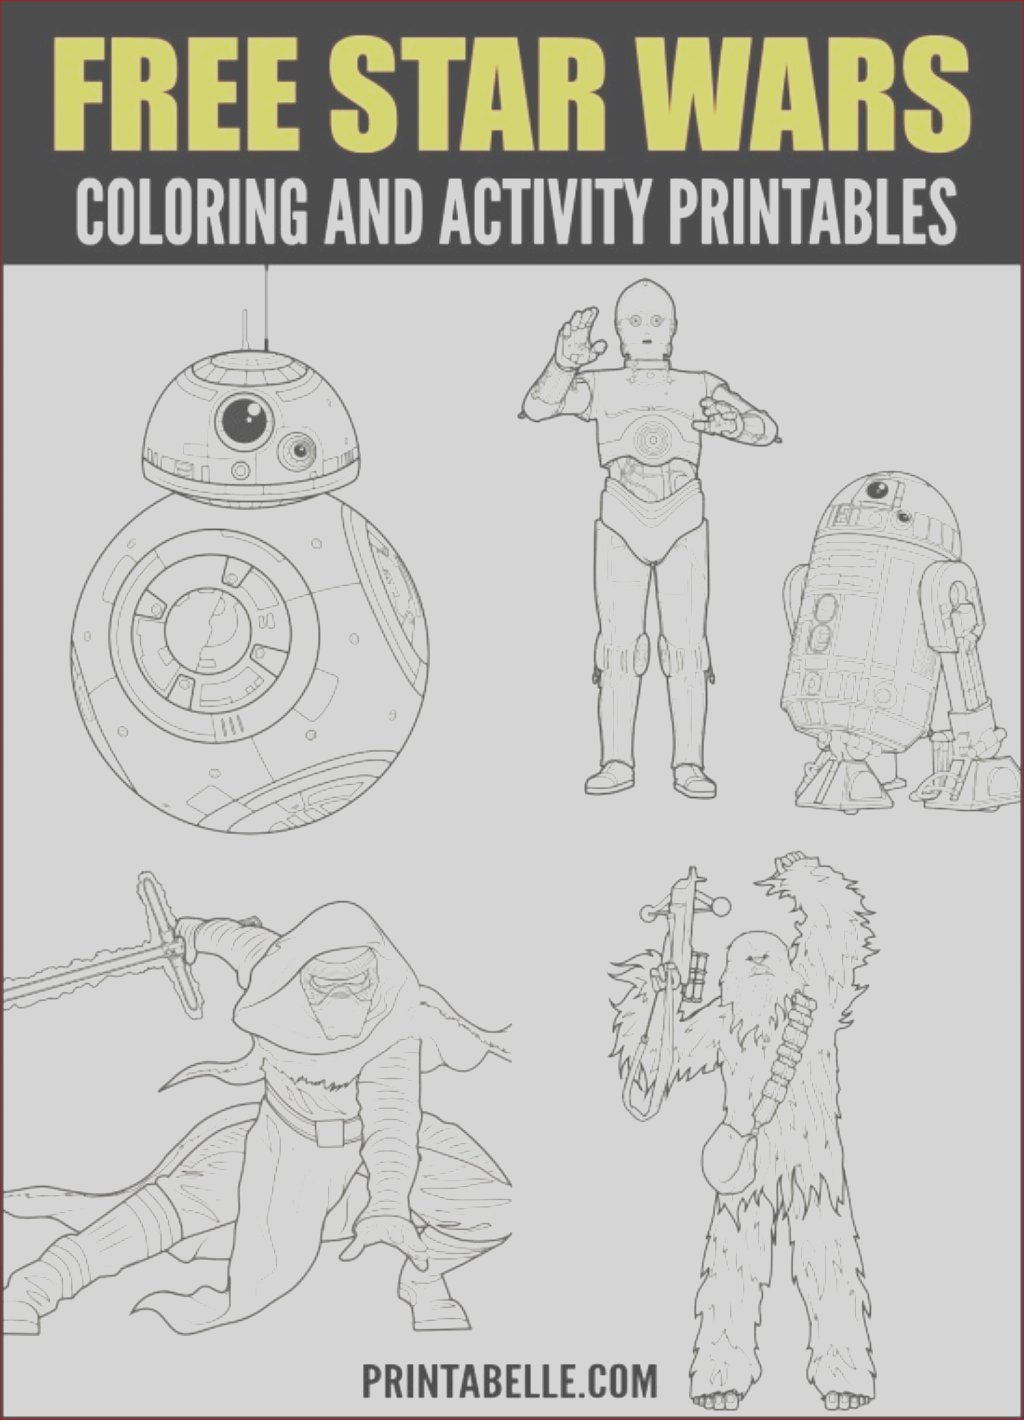 free printable star wars activity pages